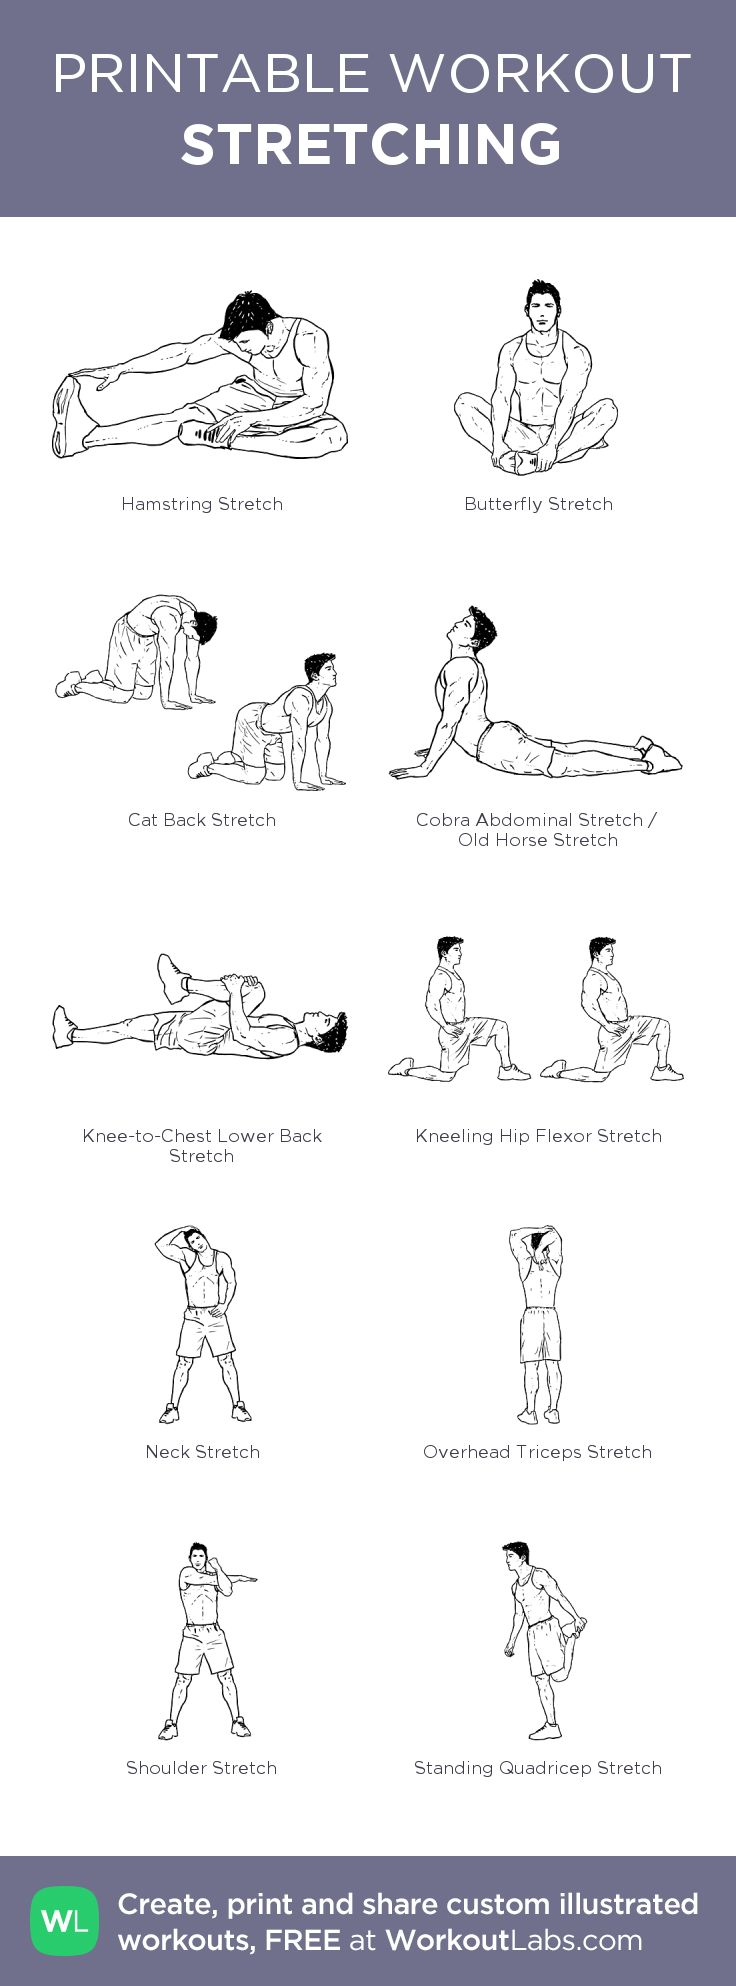 STRETCHING: my visual workout created at WorkoutLabs.com • Click through to customize and download as a FREE PDF! #customworkout